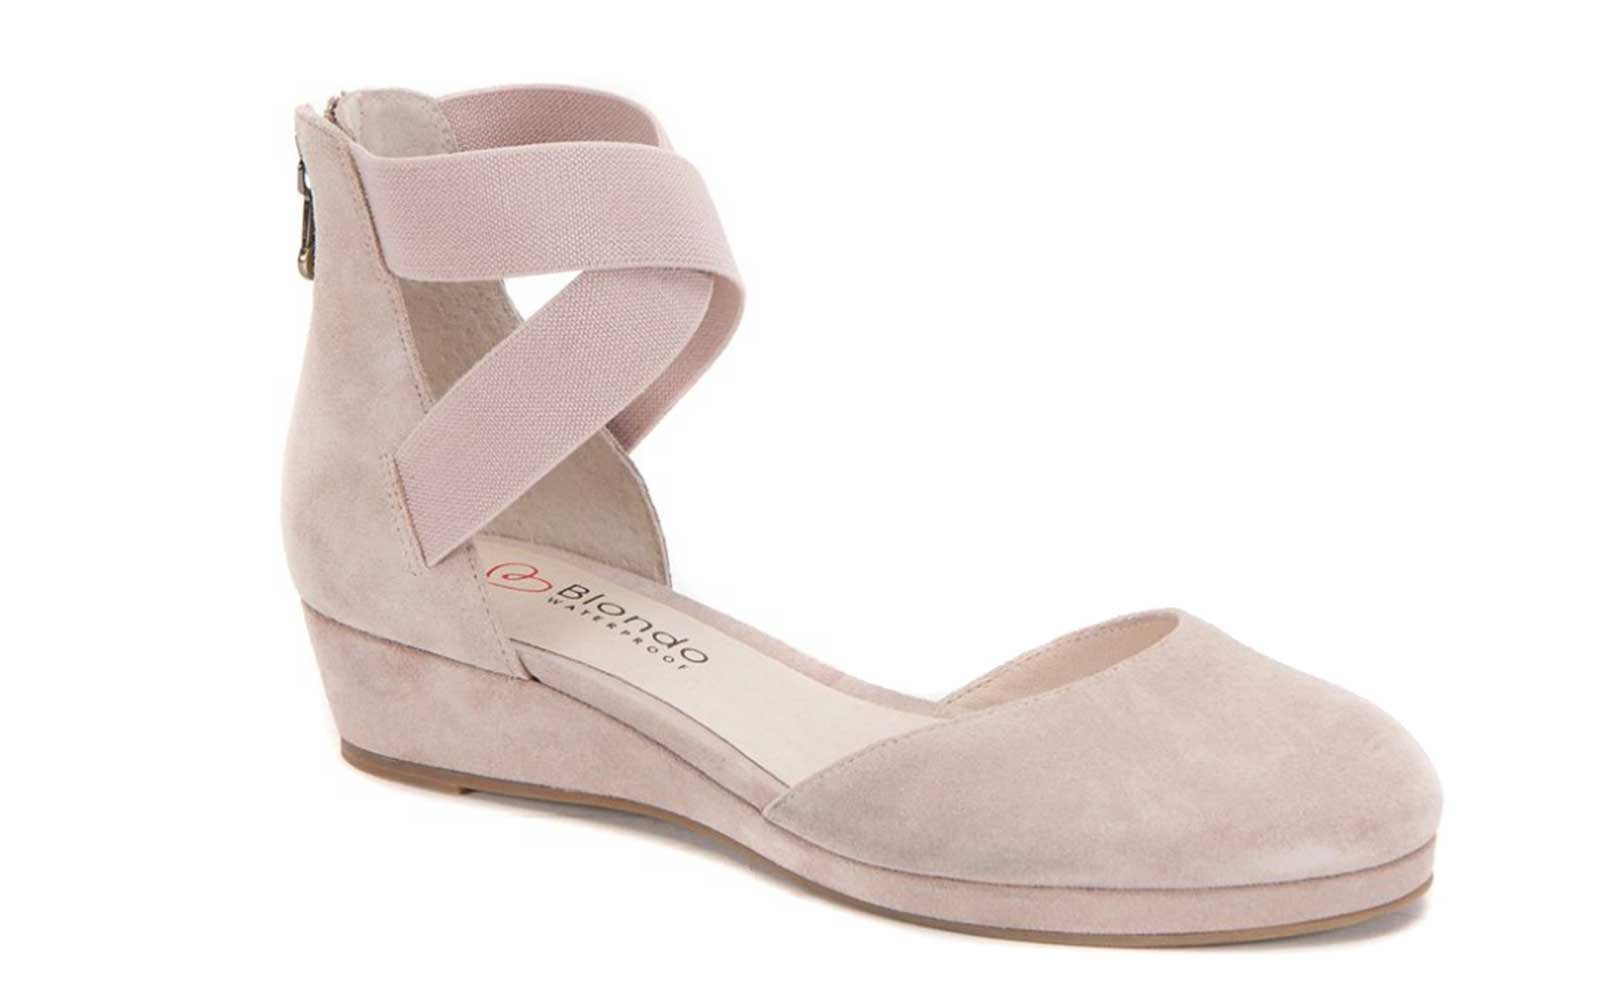 Pink suede wedge by Blondo